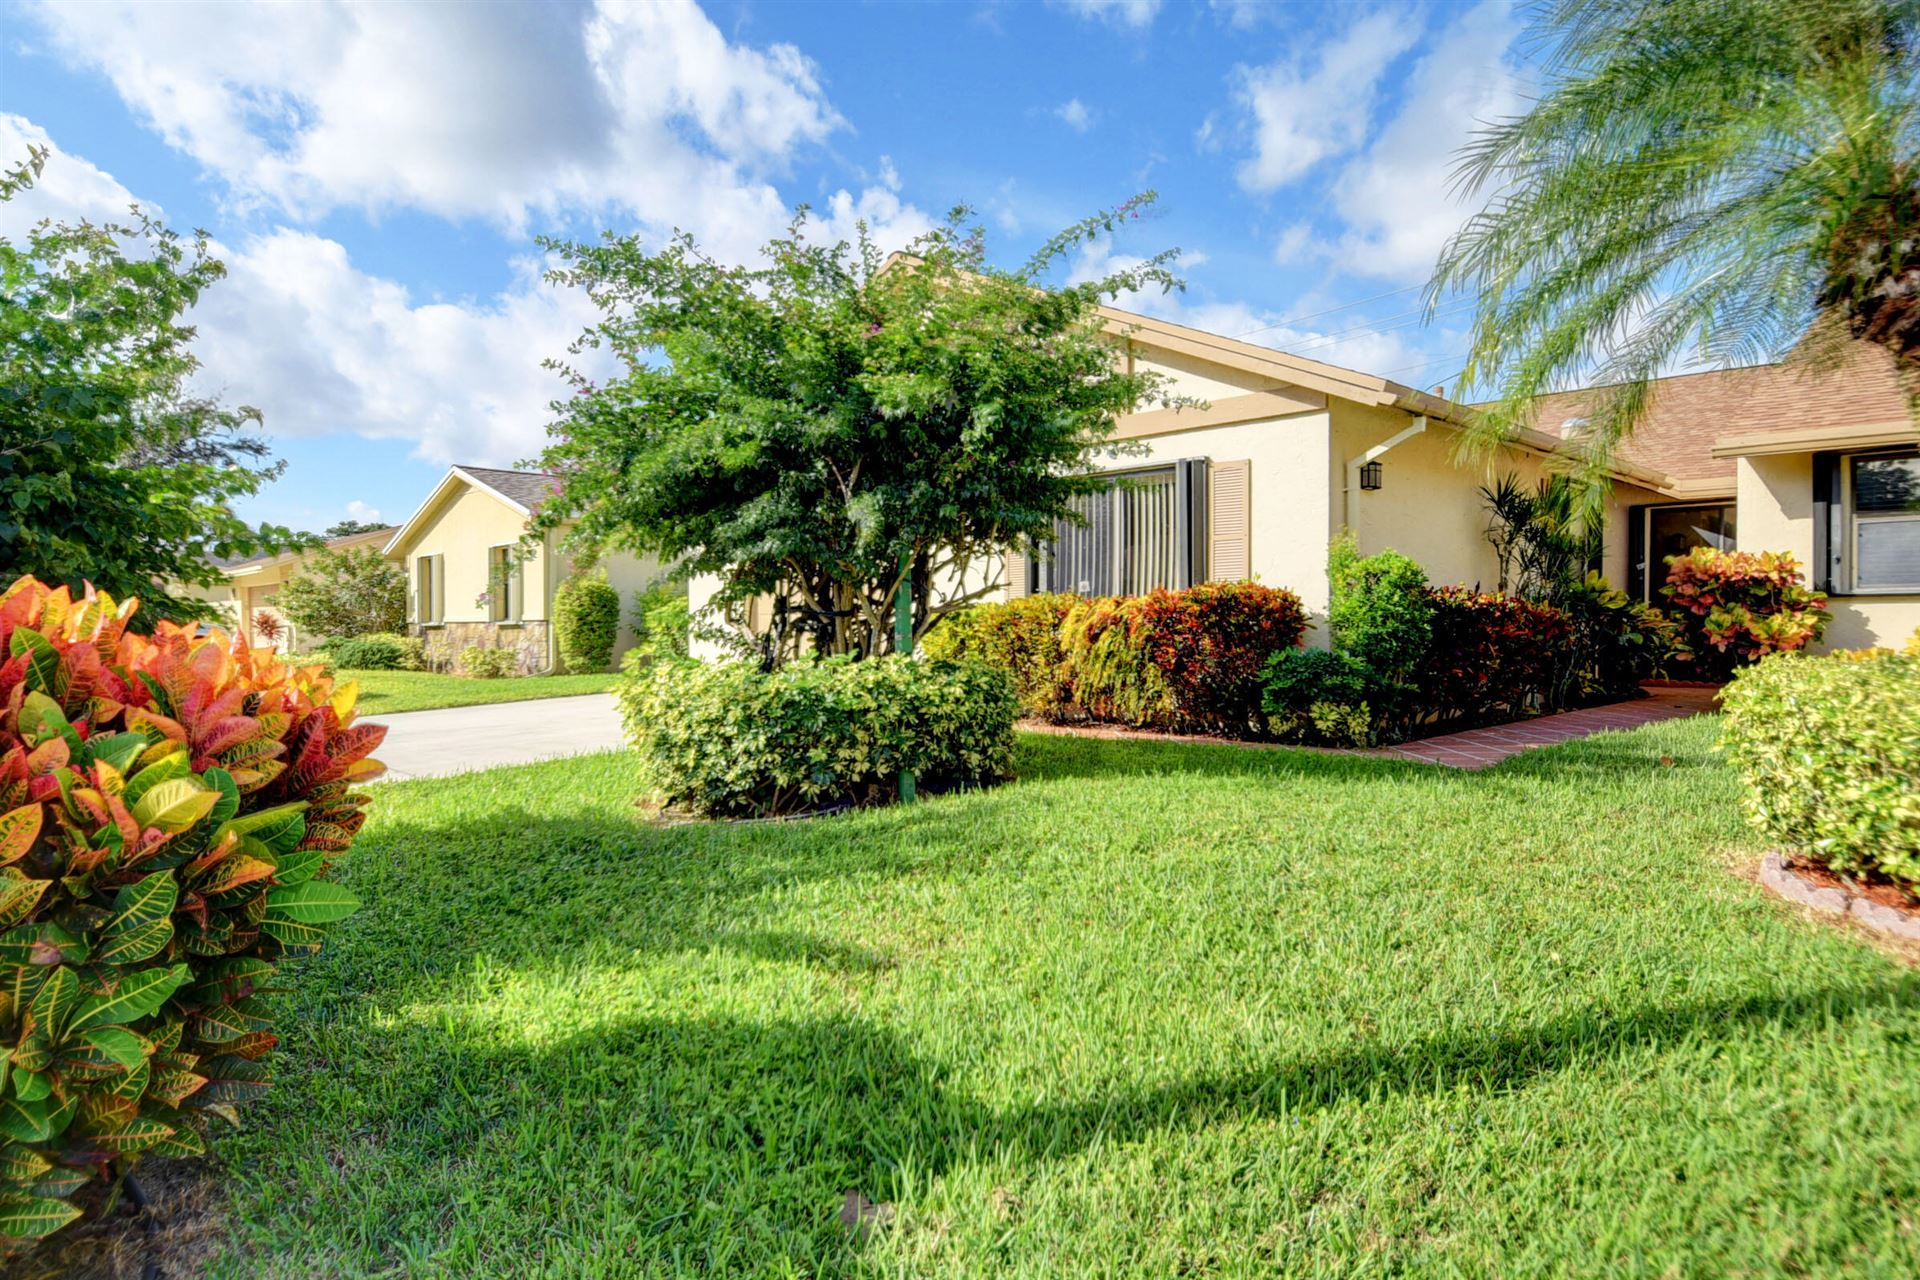 Photo of 870 NW 32nd Avenue, Delray Beach, FL 33445 (MLS # RX-10753754)